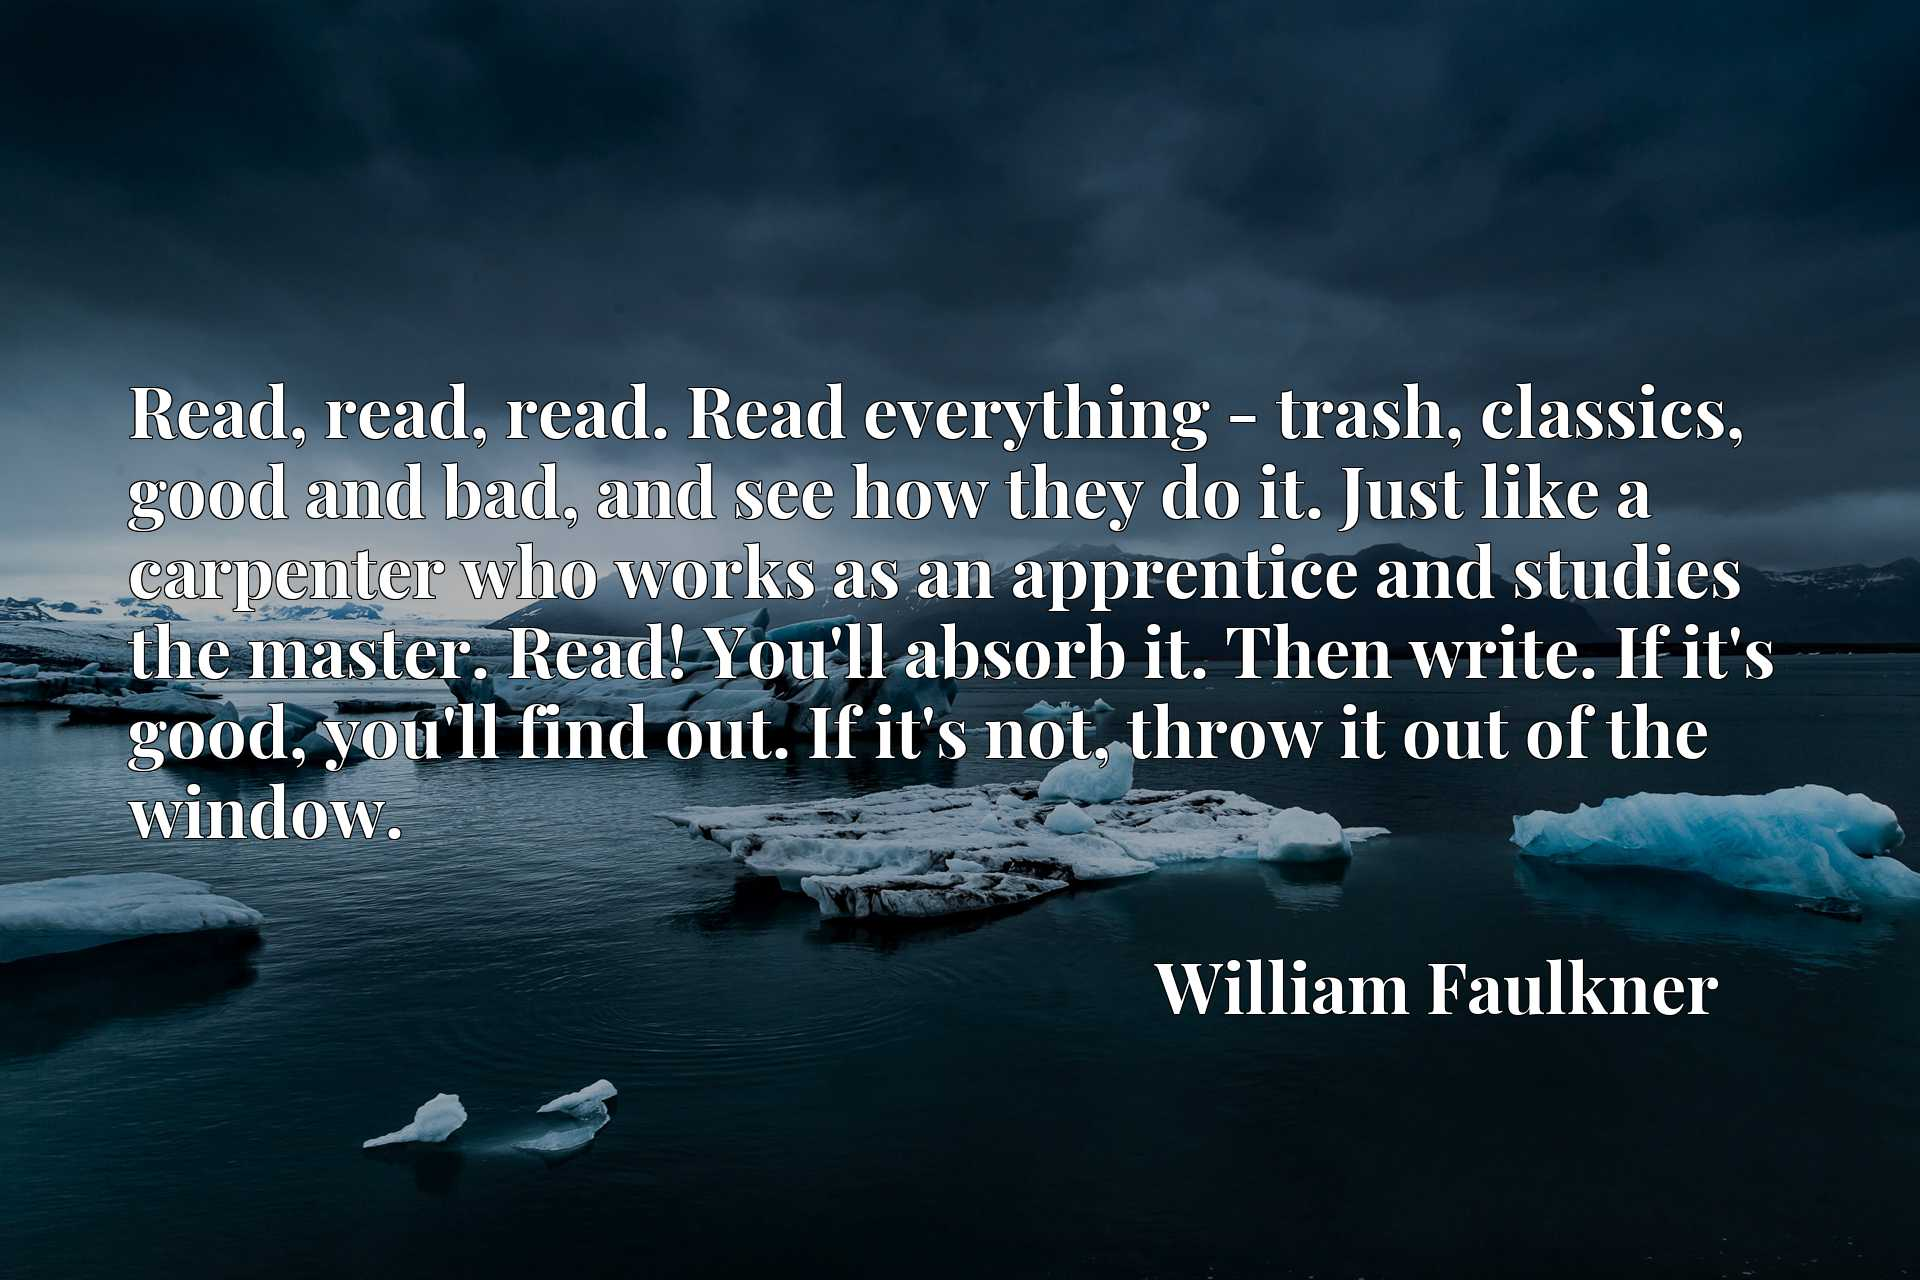 Read, read, read. Read everything - trash, classics, good and bad, and see how they do it. Just like a carpenter who works as an apprentice and studies the master. Read! You'll absorb it. Then write. If it's good, you'll find out. If it's not, throw it out of the window.